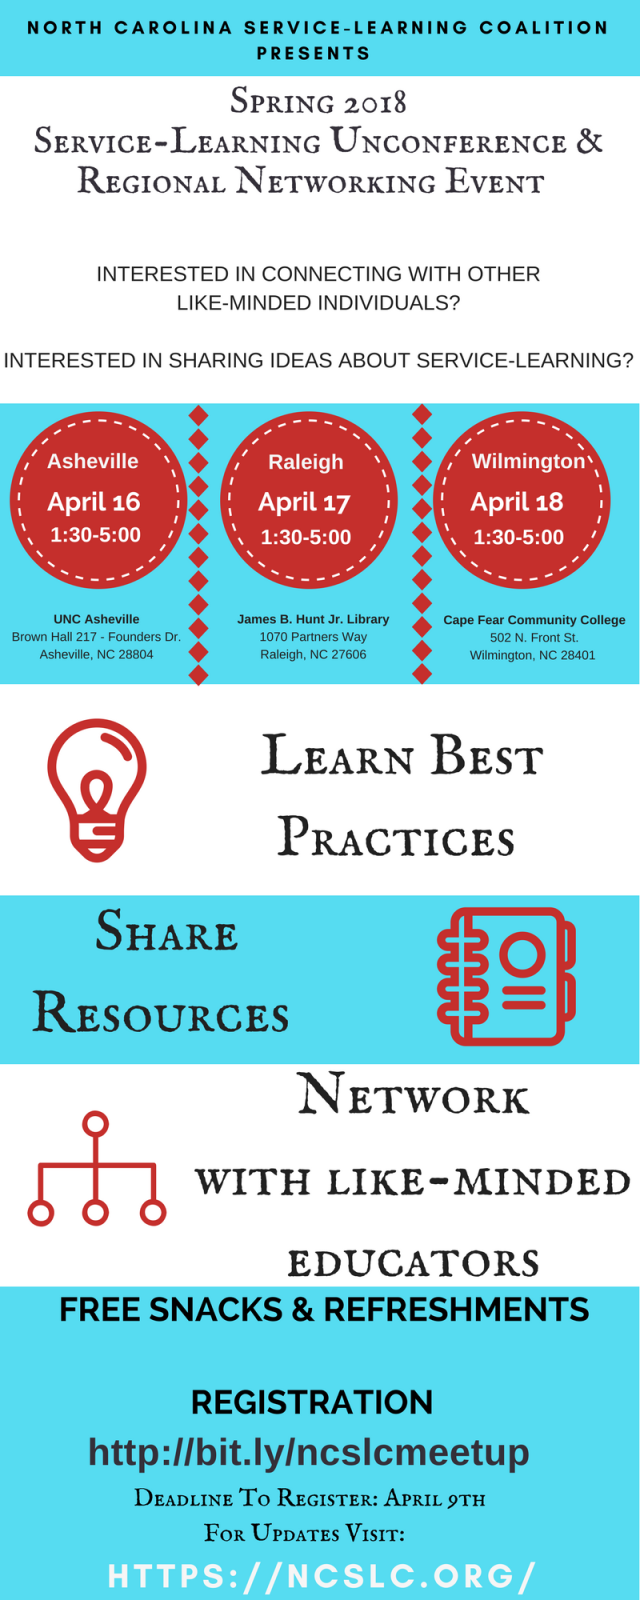 spring 2018 service-learning 'unconference' and regional networking